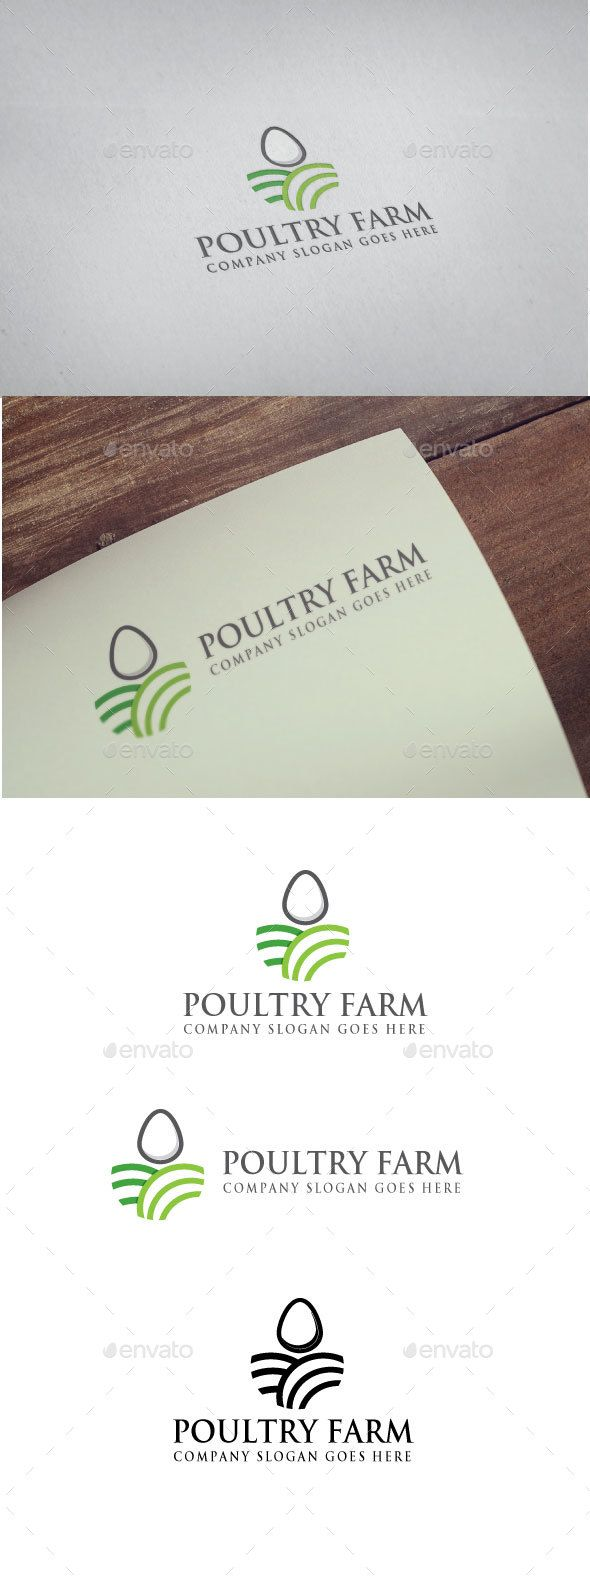 Poultry Farm logo by Goodigital Features: - eps and ai FILE - CMYK 300 DPI - FREE FONT USED - LAYERS ORGANIZED FONT trajan Asap Download: http://www.fontpalace.co